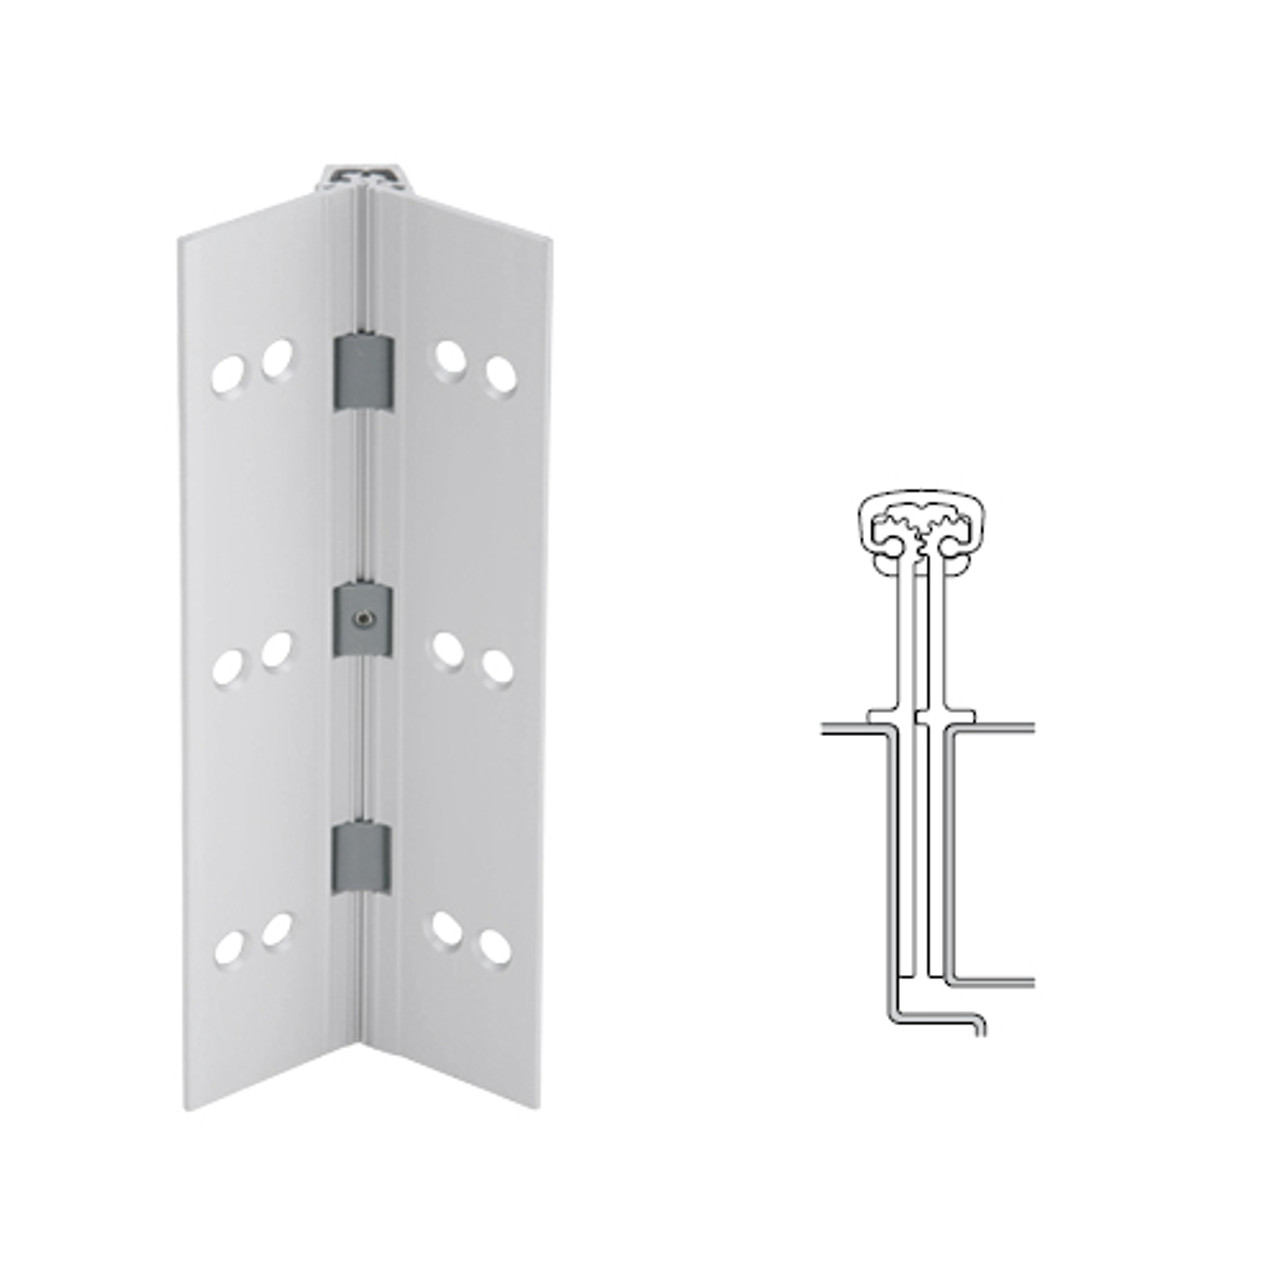 040XY-US28-120 IVES Full Mortise Continuous Geared Hinges in Satin Aluminum